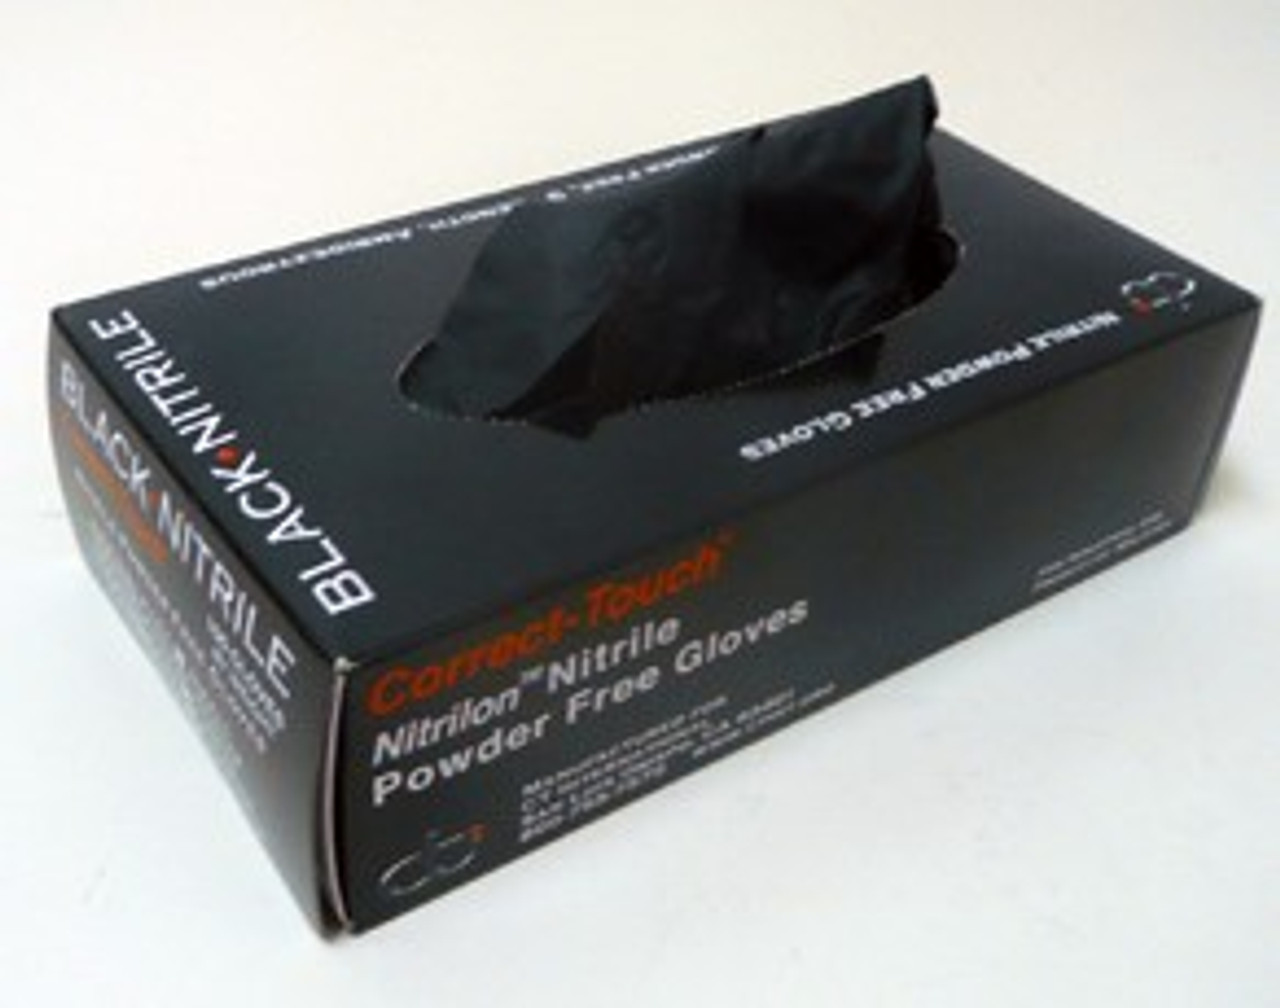 Correct Touch Black Nitrile Gloves Box 100ct